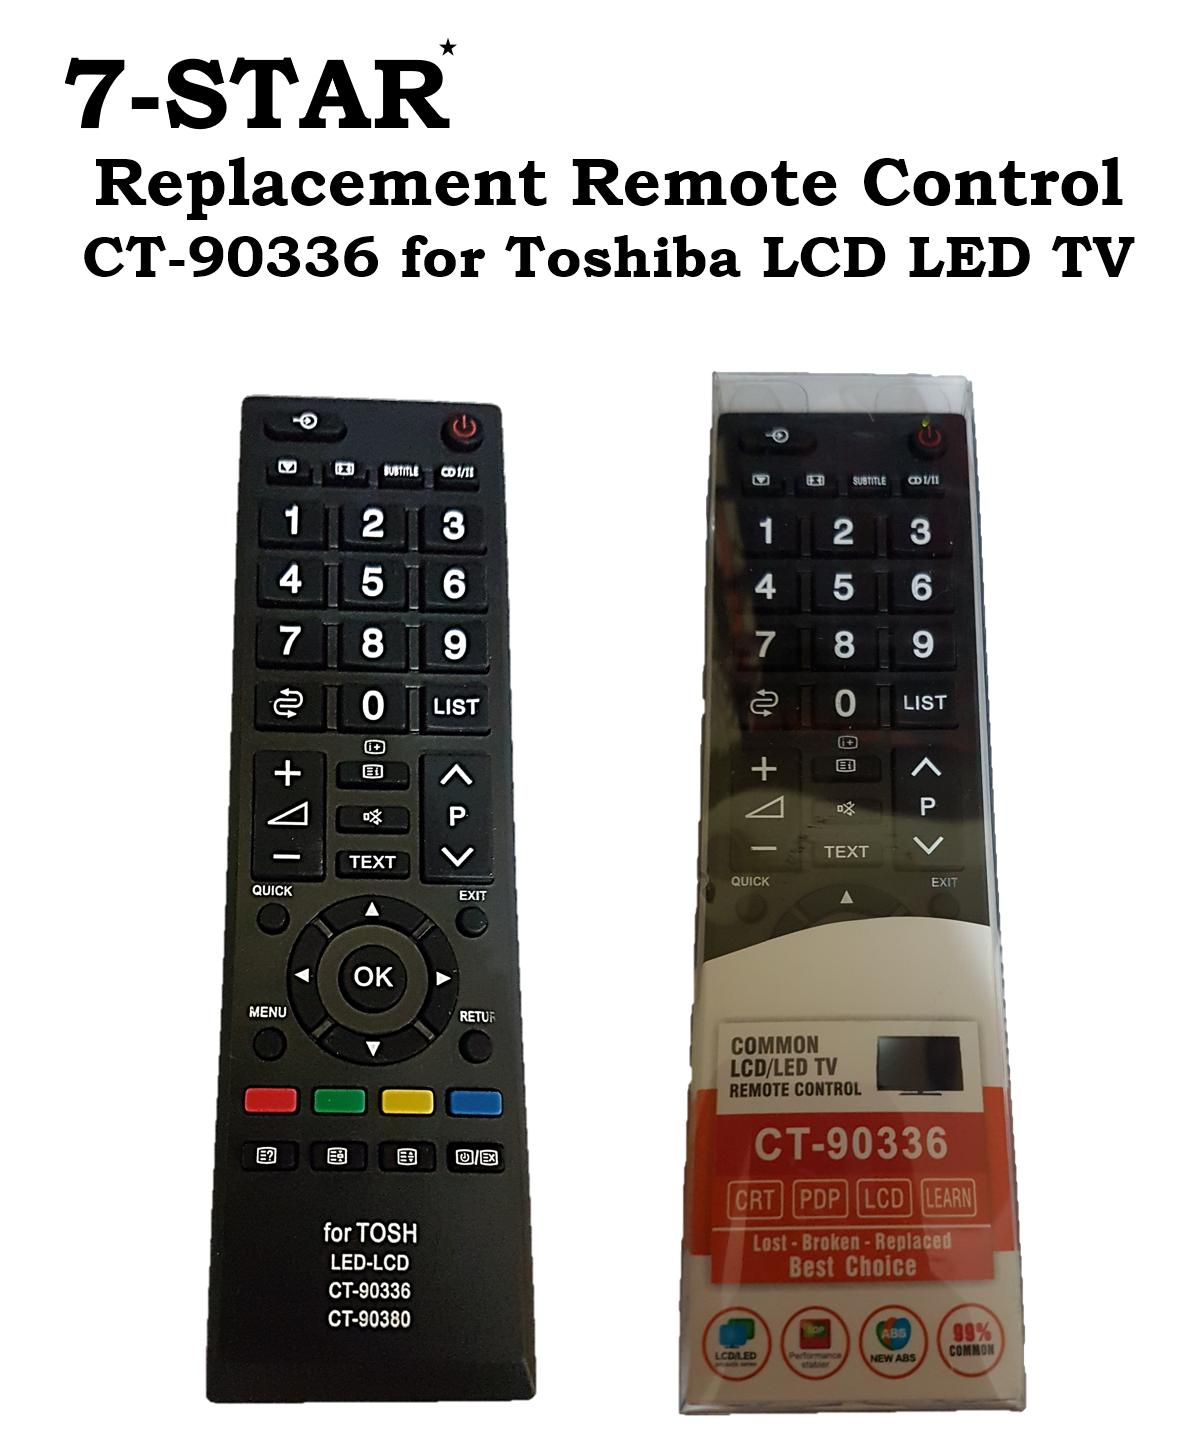 Buy Smart Led Tv Online Full Hd Ultra Xooes Remote Sony Lcd Replacement Control Ct 90336 For Toshiba Universal